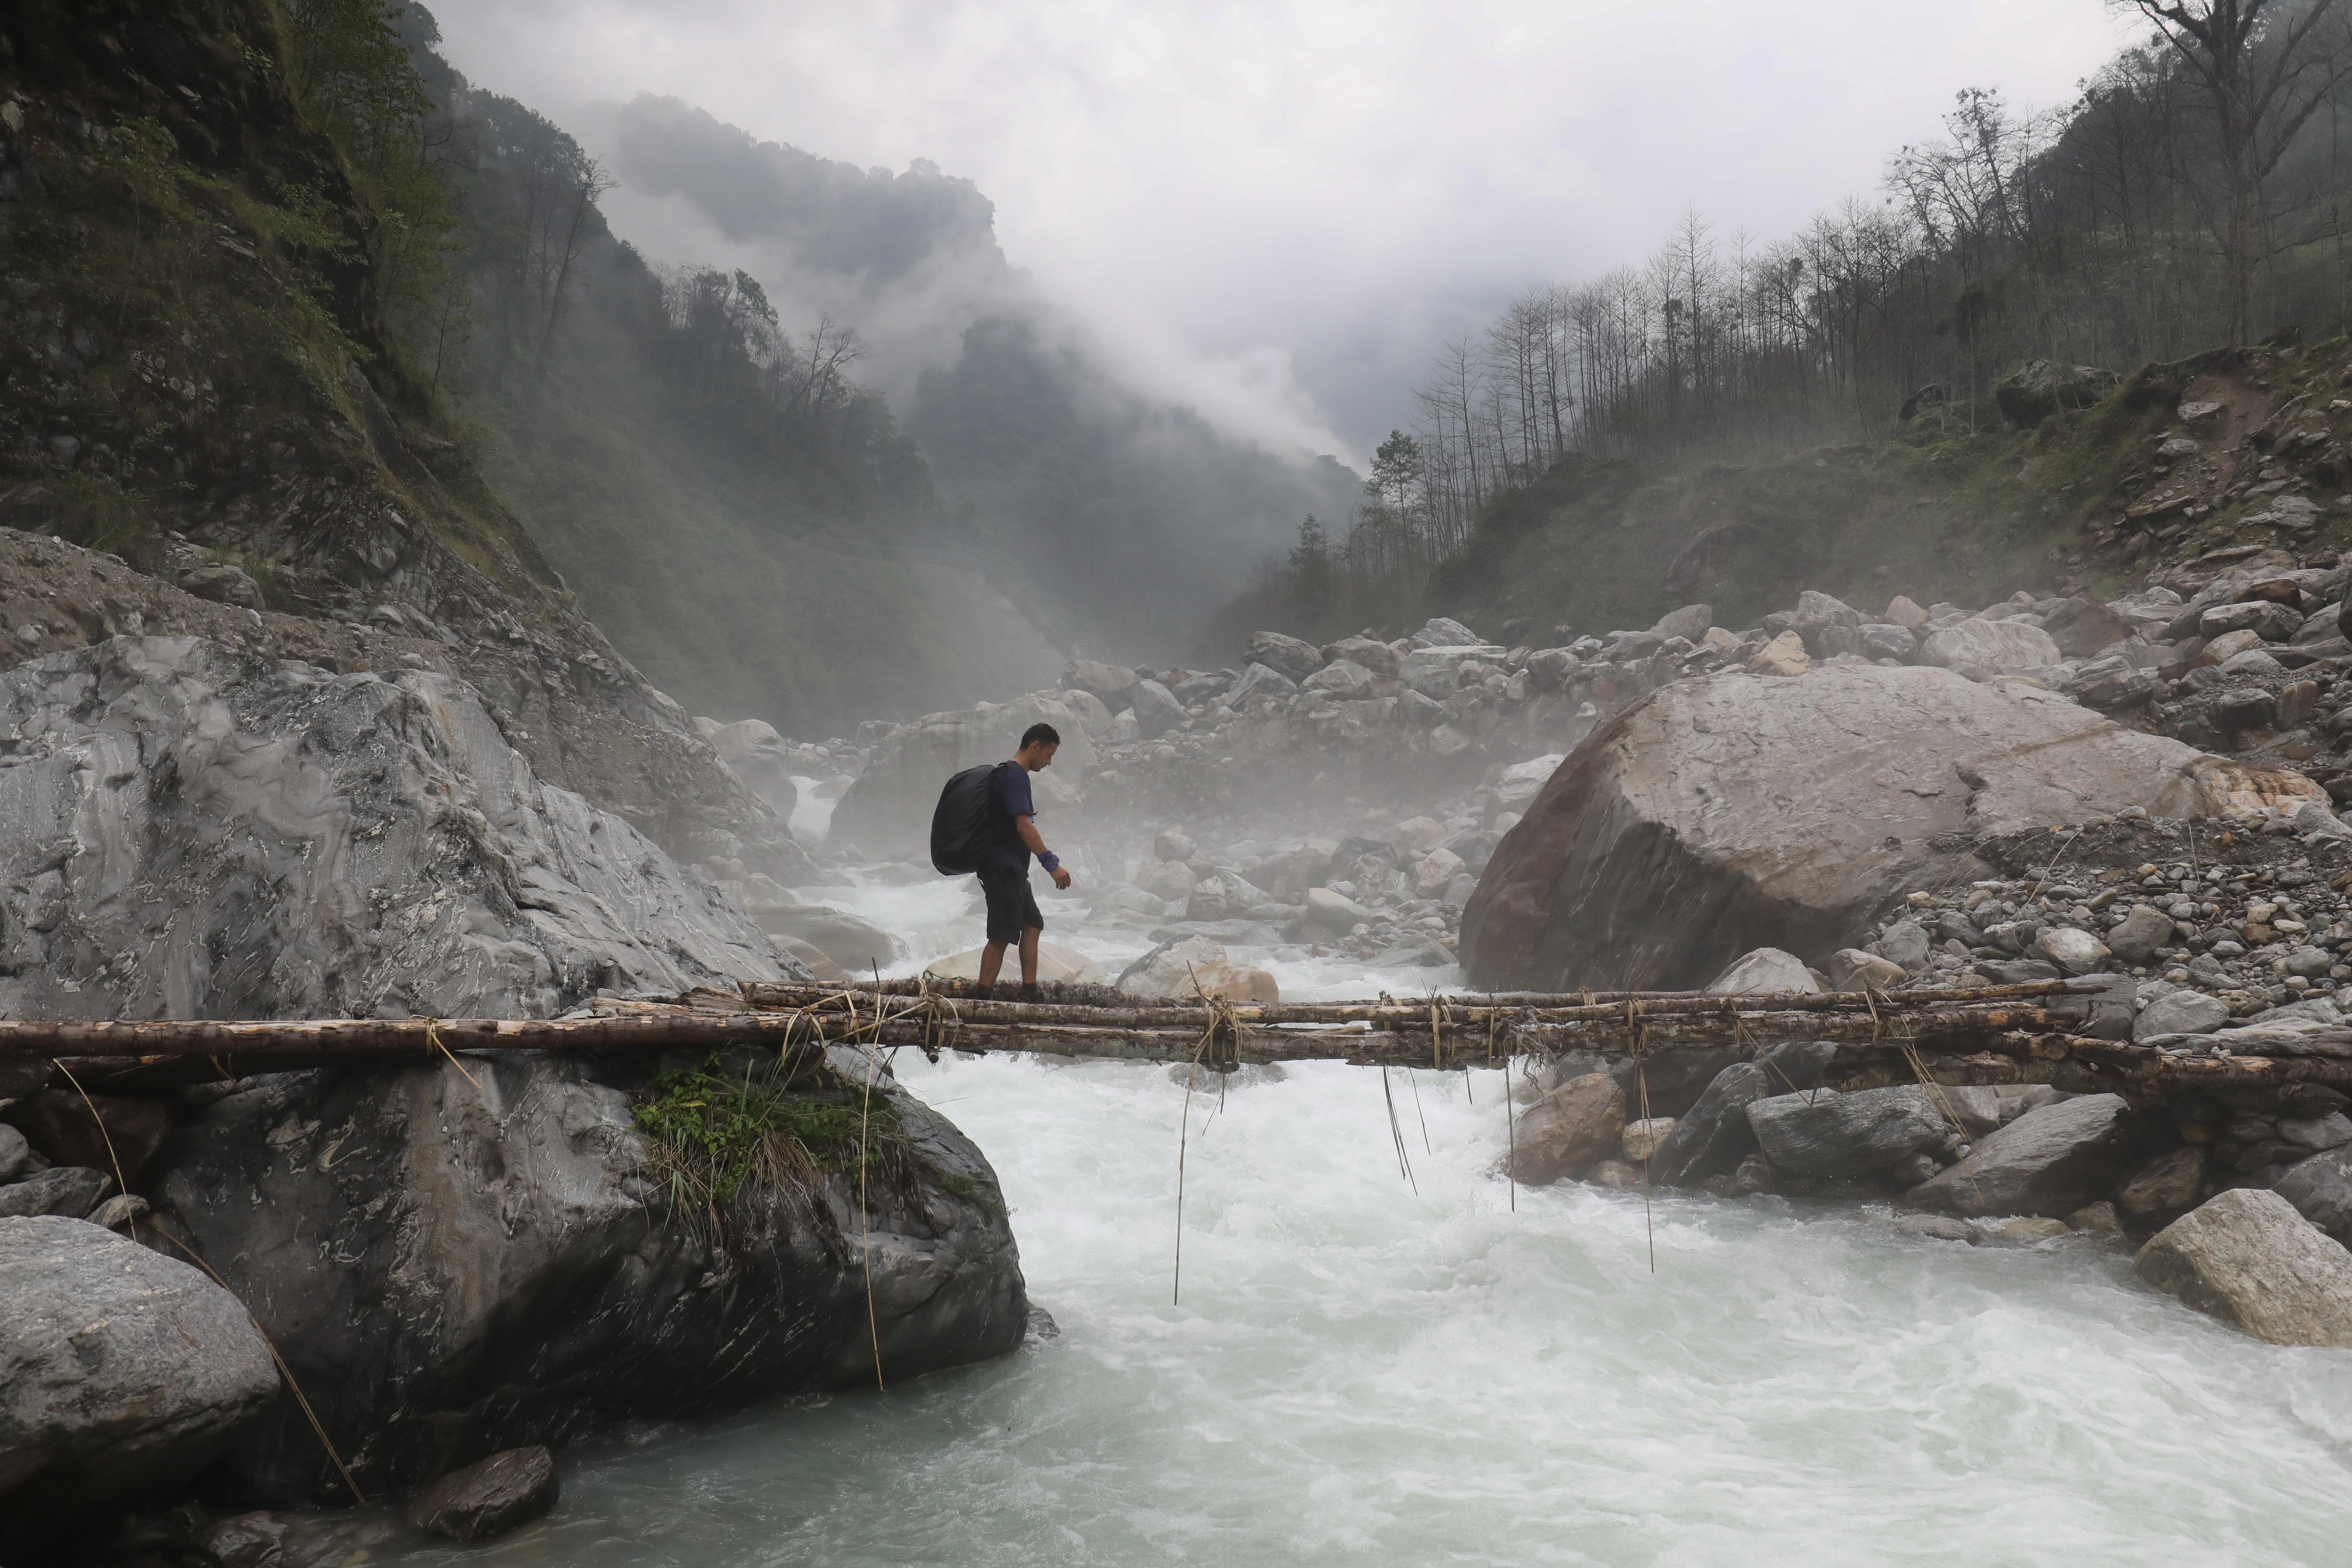 Trek back in time 'to the real Nepal'